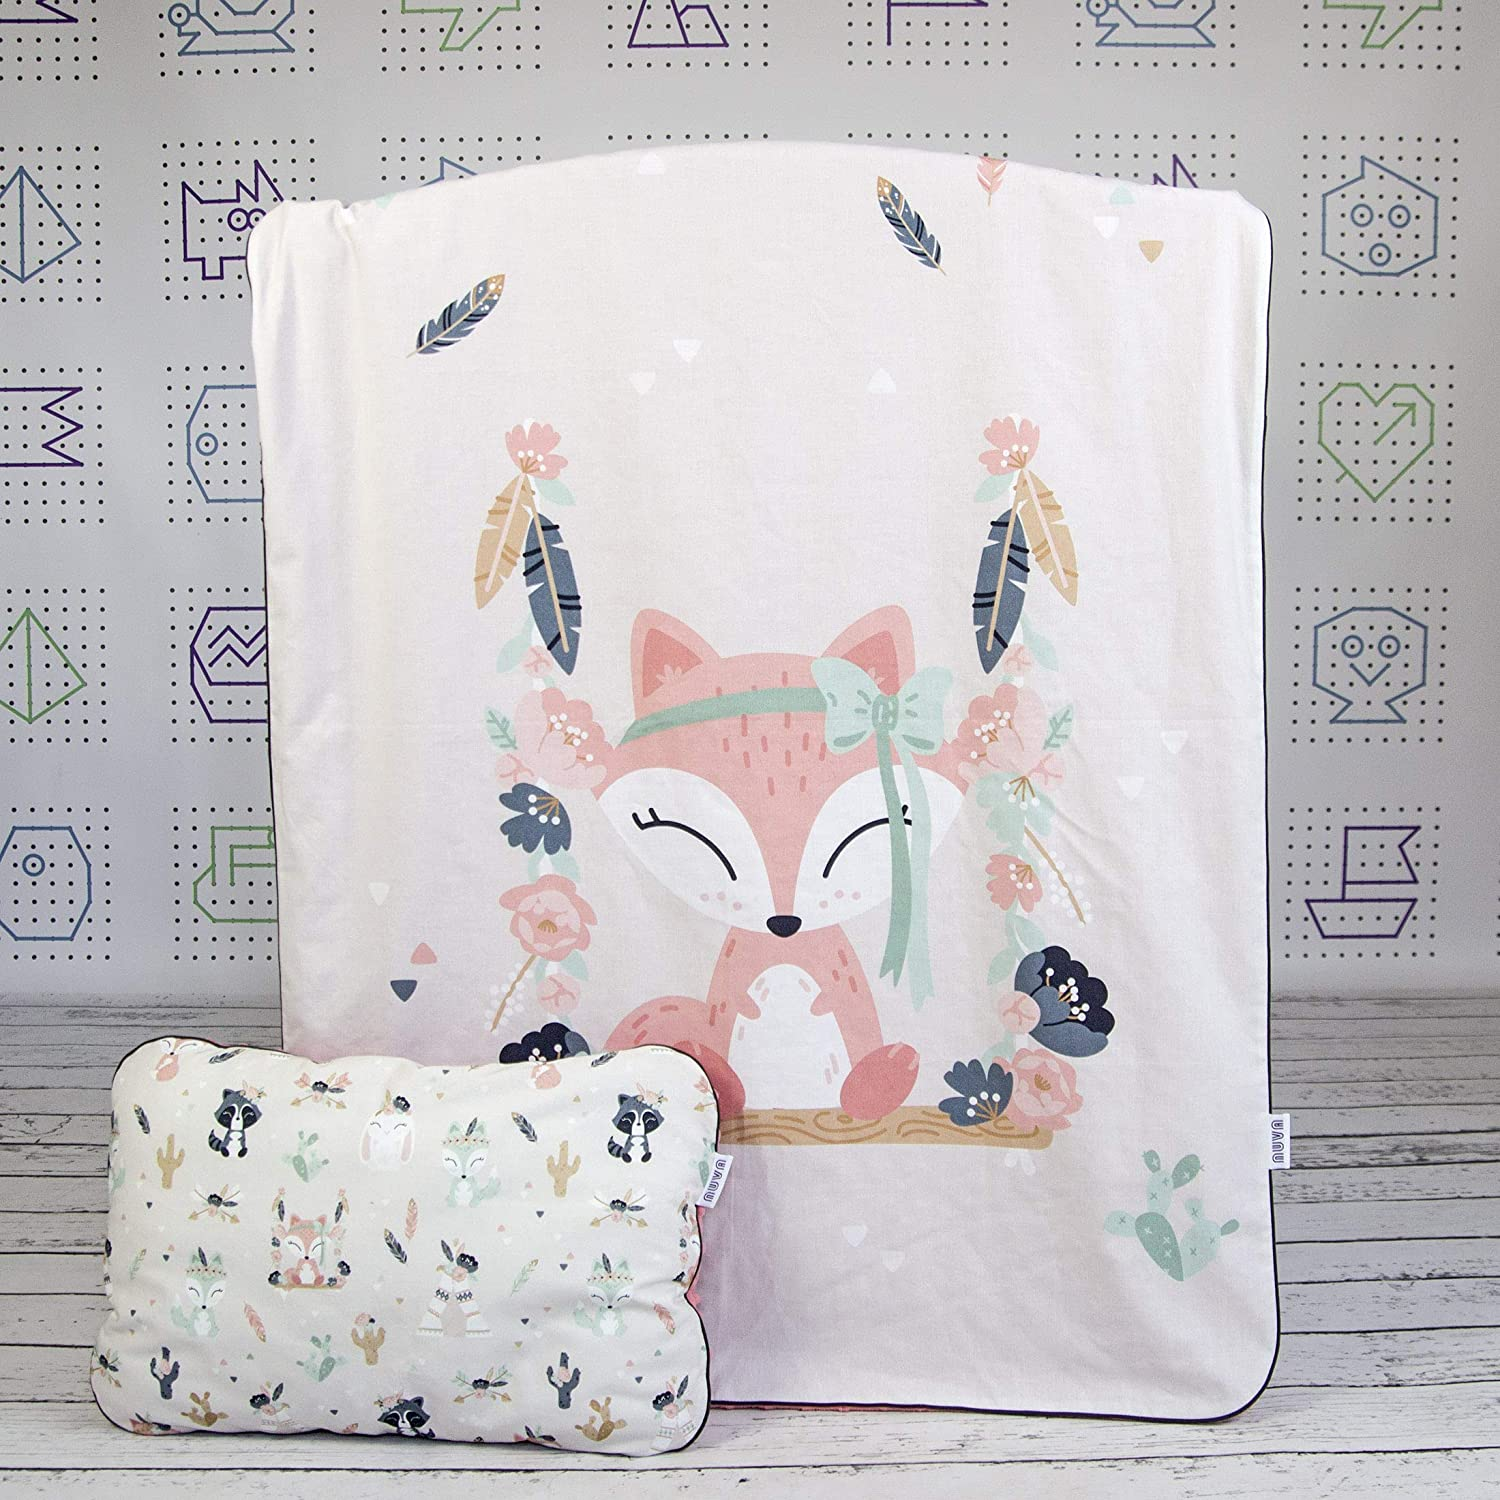 Fox Bohemian Friends Baby Crib Bedding Minky Blanket With Panel Print And Flat Infant Pillow Nuva Amazon Co Uk Handmade